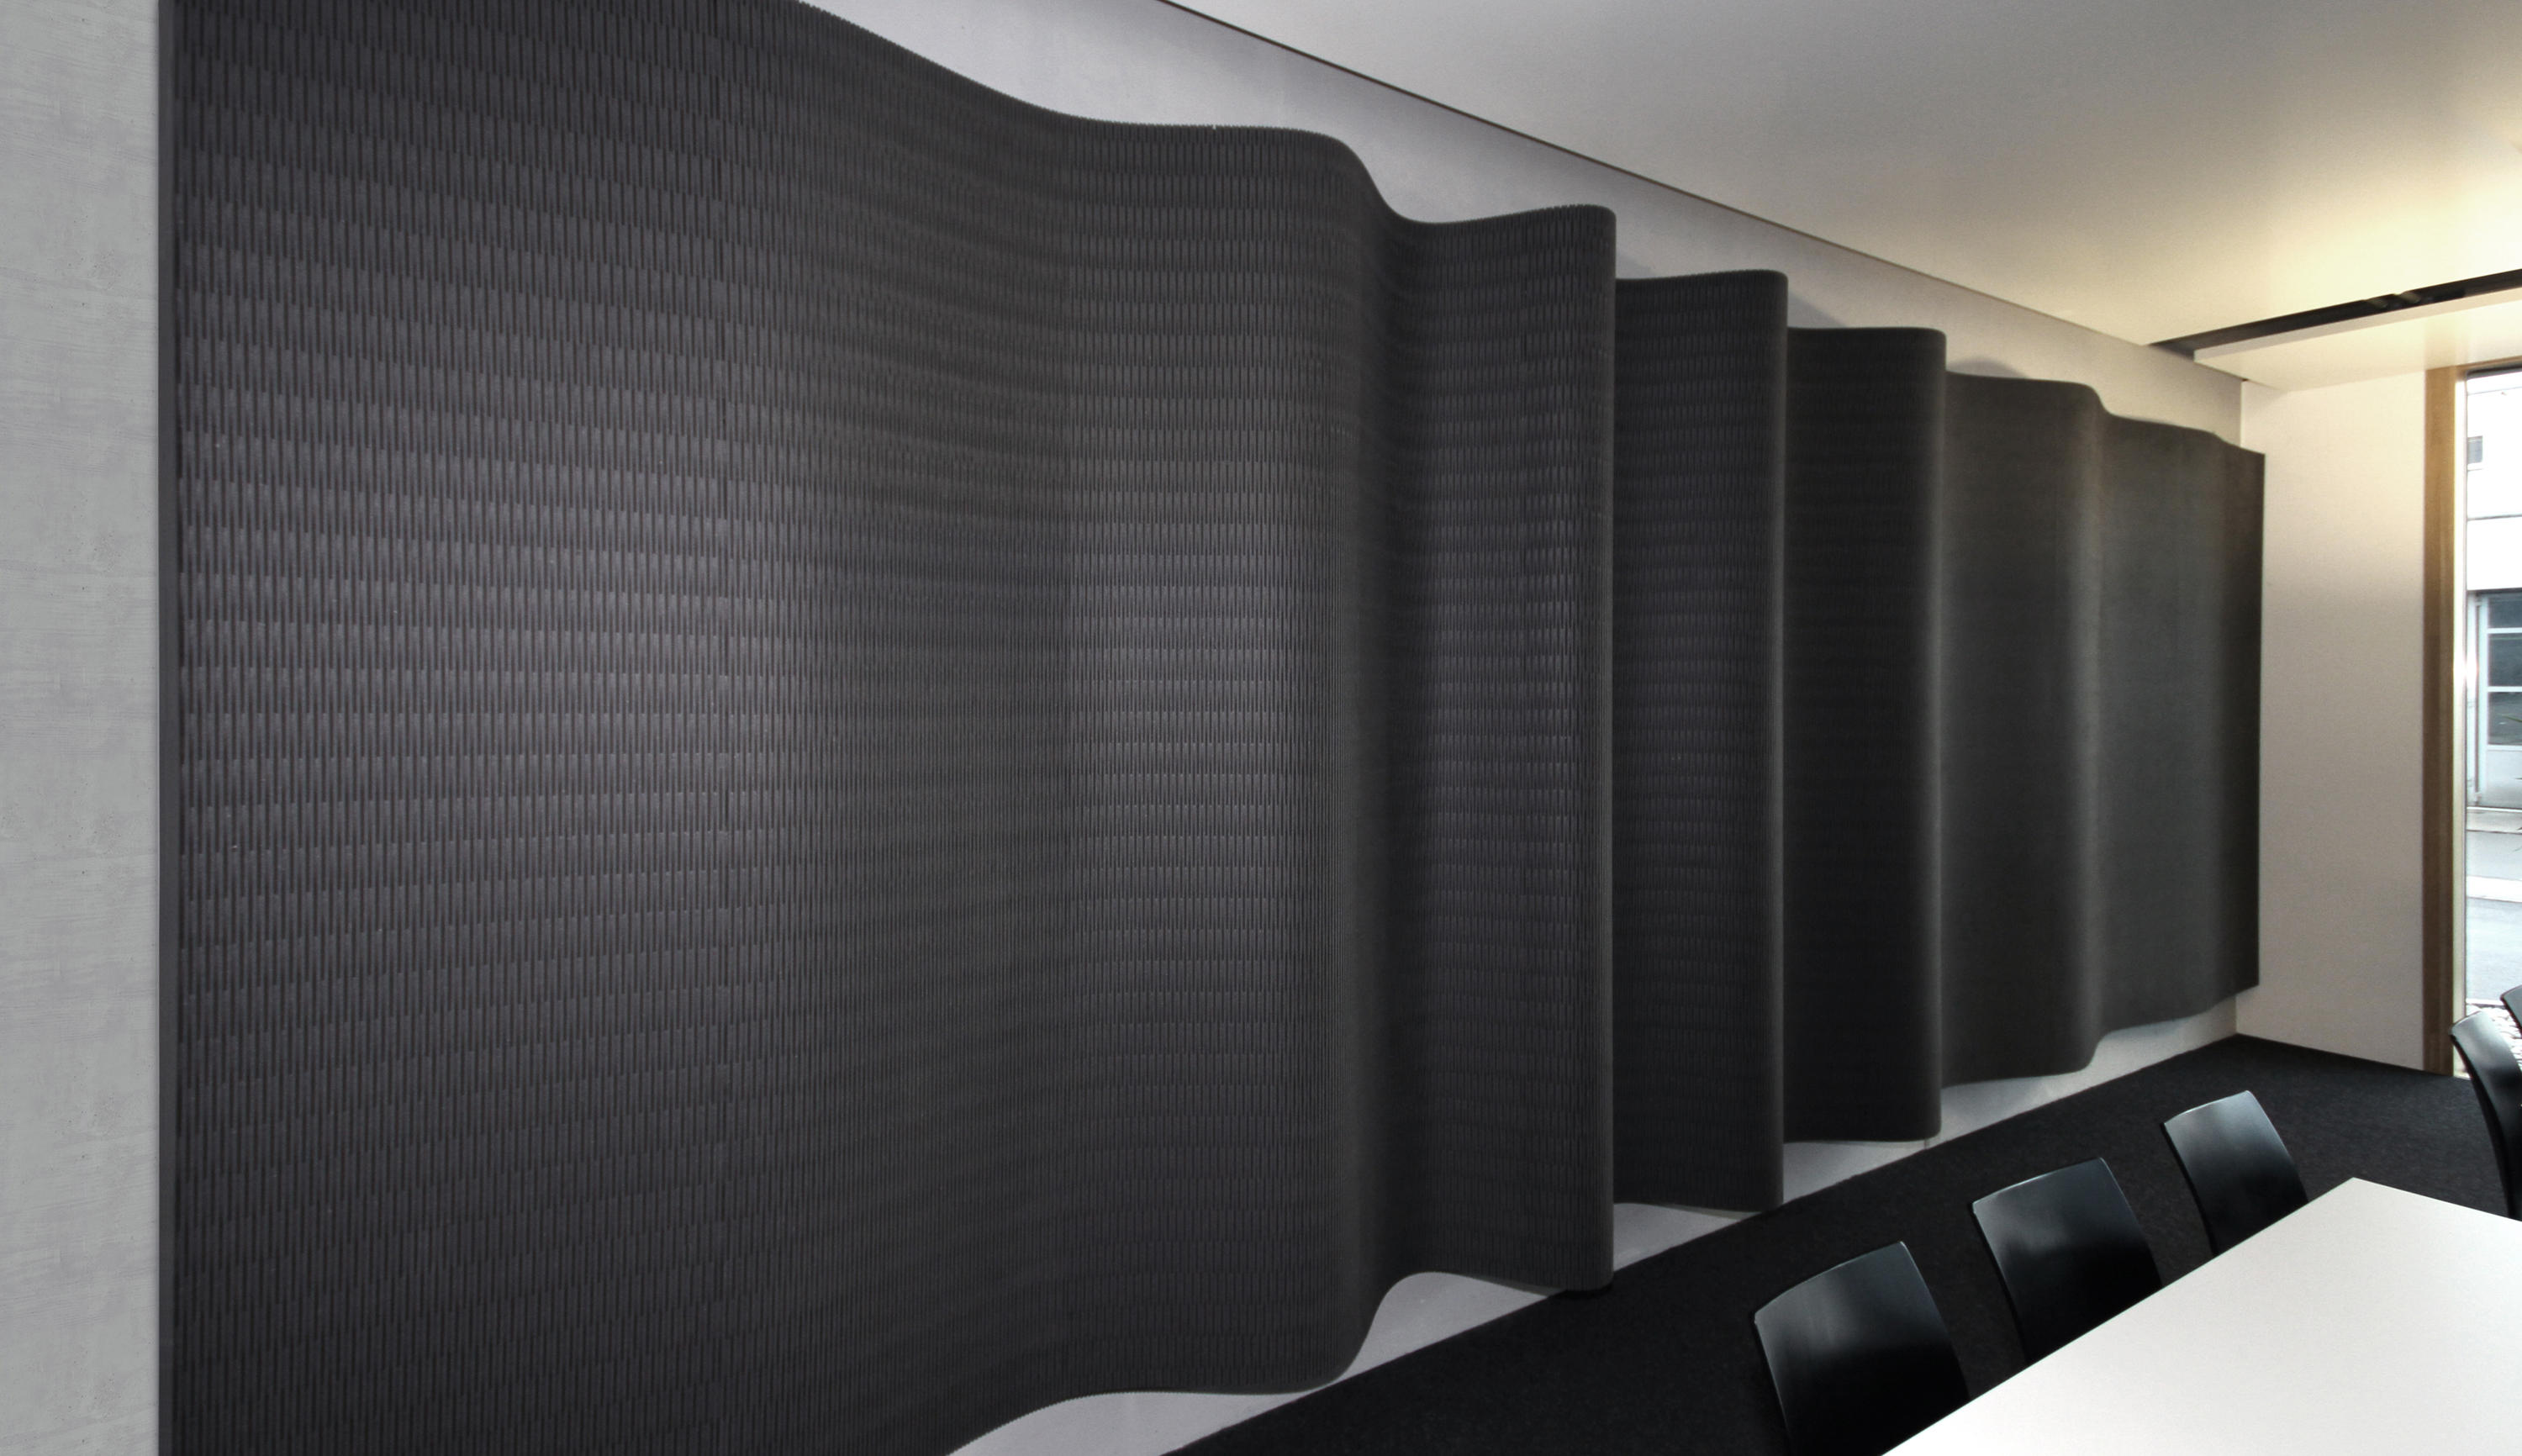 acoustic panel w0 plywood birch wood panels from dukta. Black Bedroom Furniture Sets. Home Design Ideas